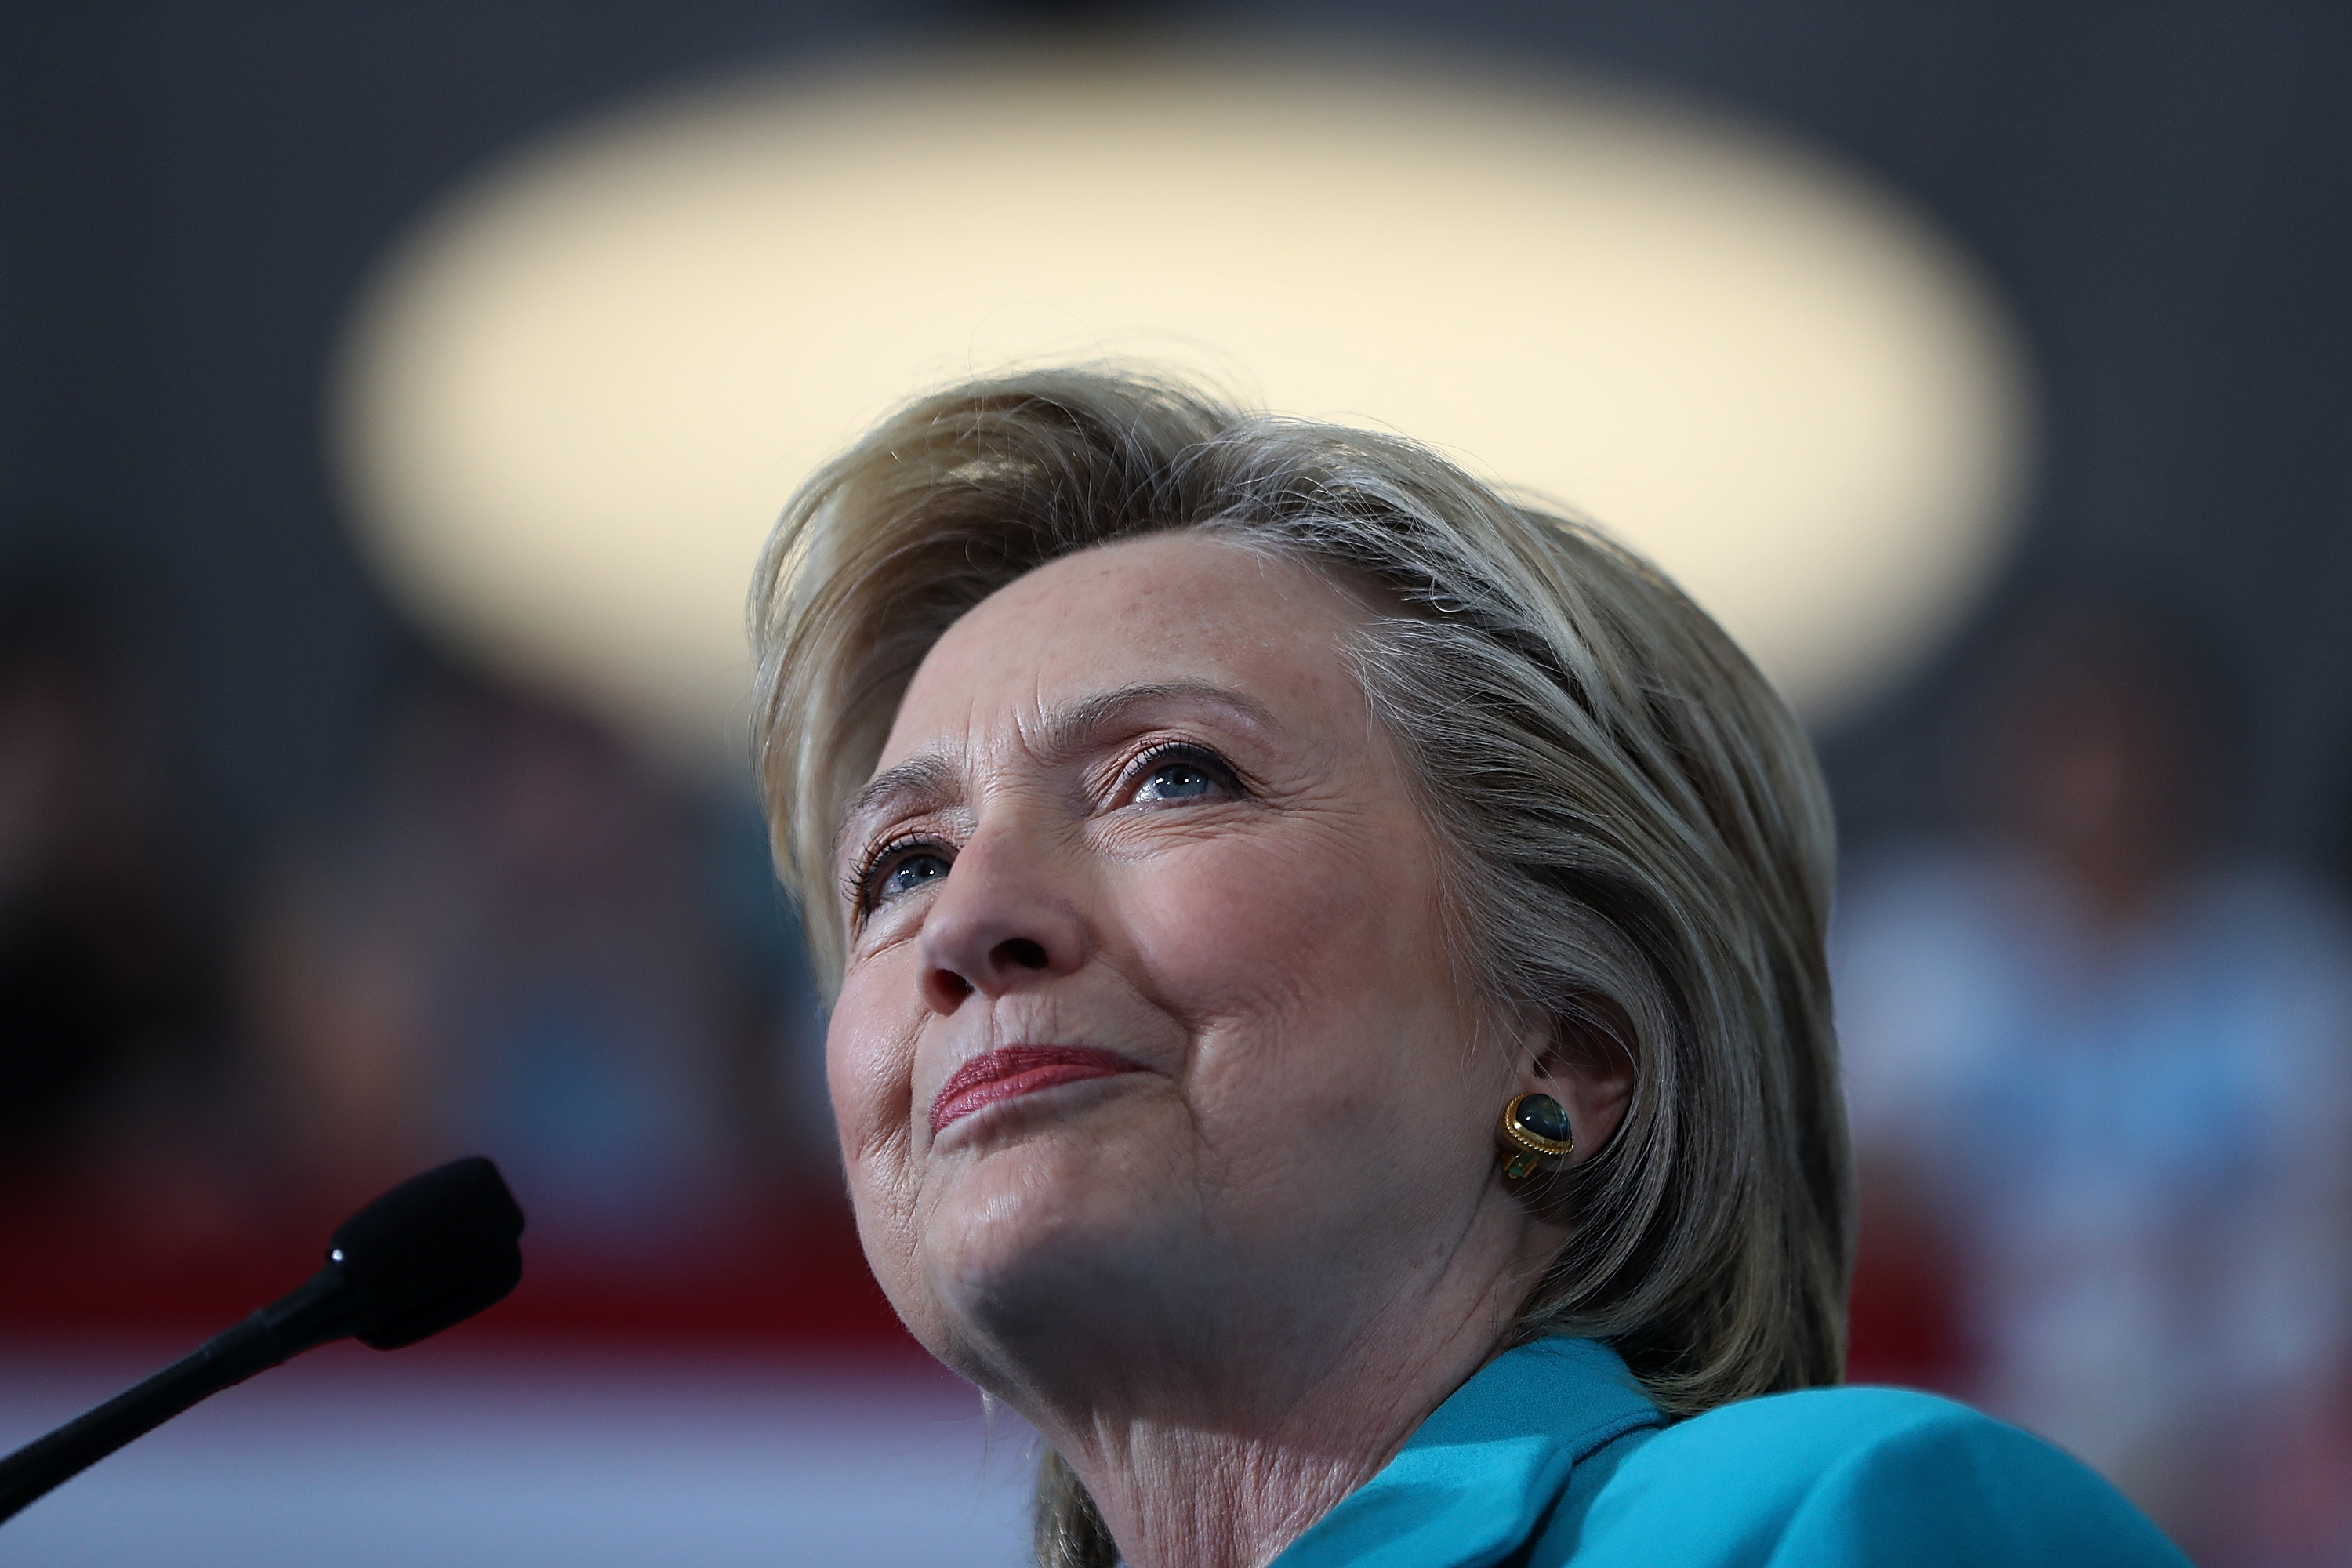 Democratic presidential nominee former Secretary of State Hillary Clinton speaks during a campaign even at Truckee Meadows Community College in Reno, Nev., on Aug. 25, 2016.